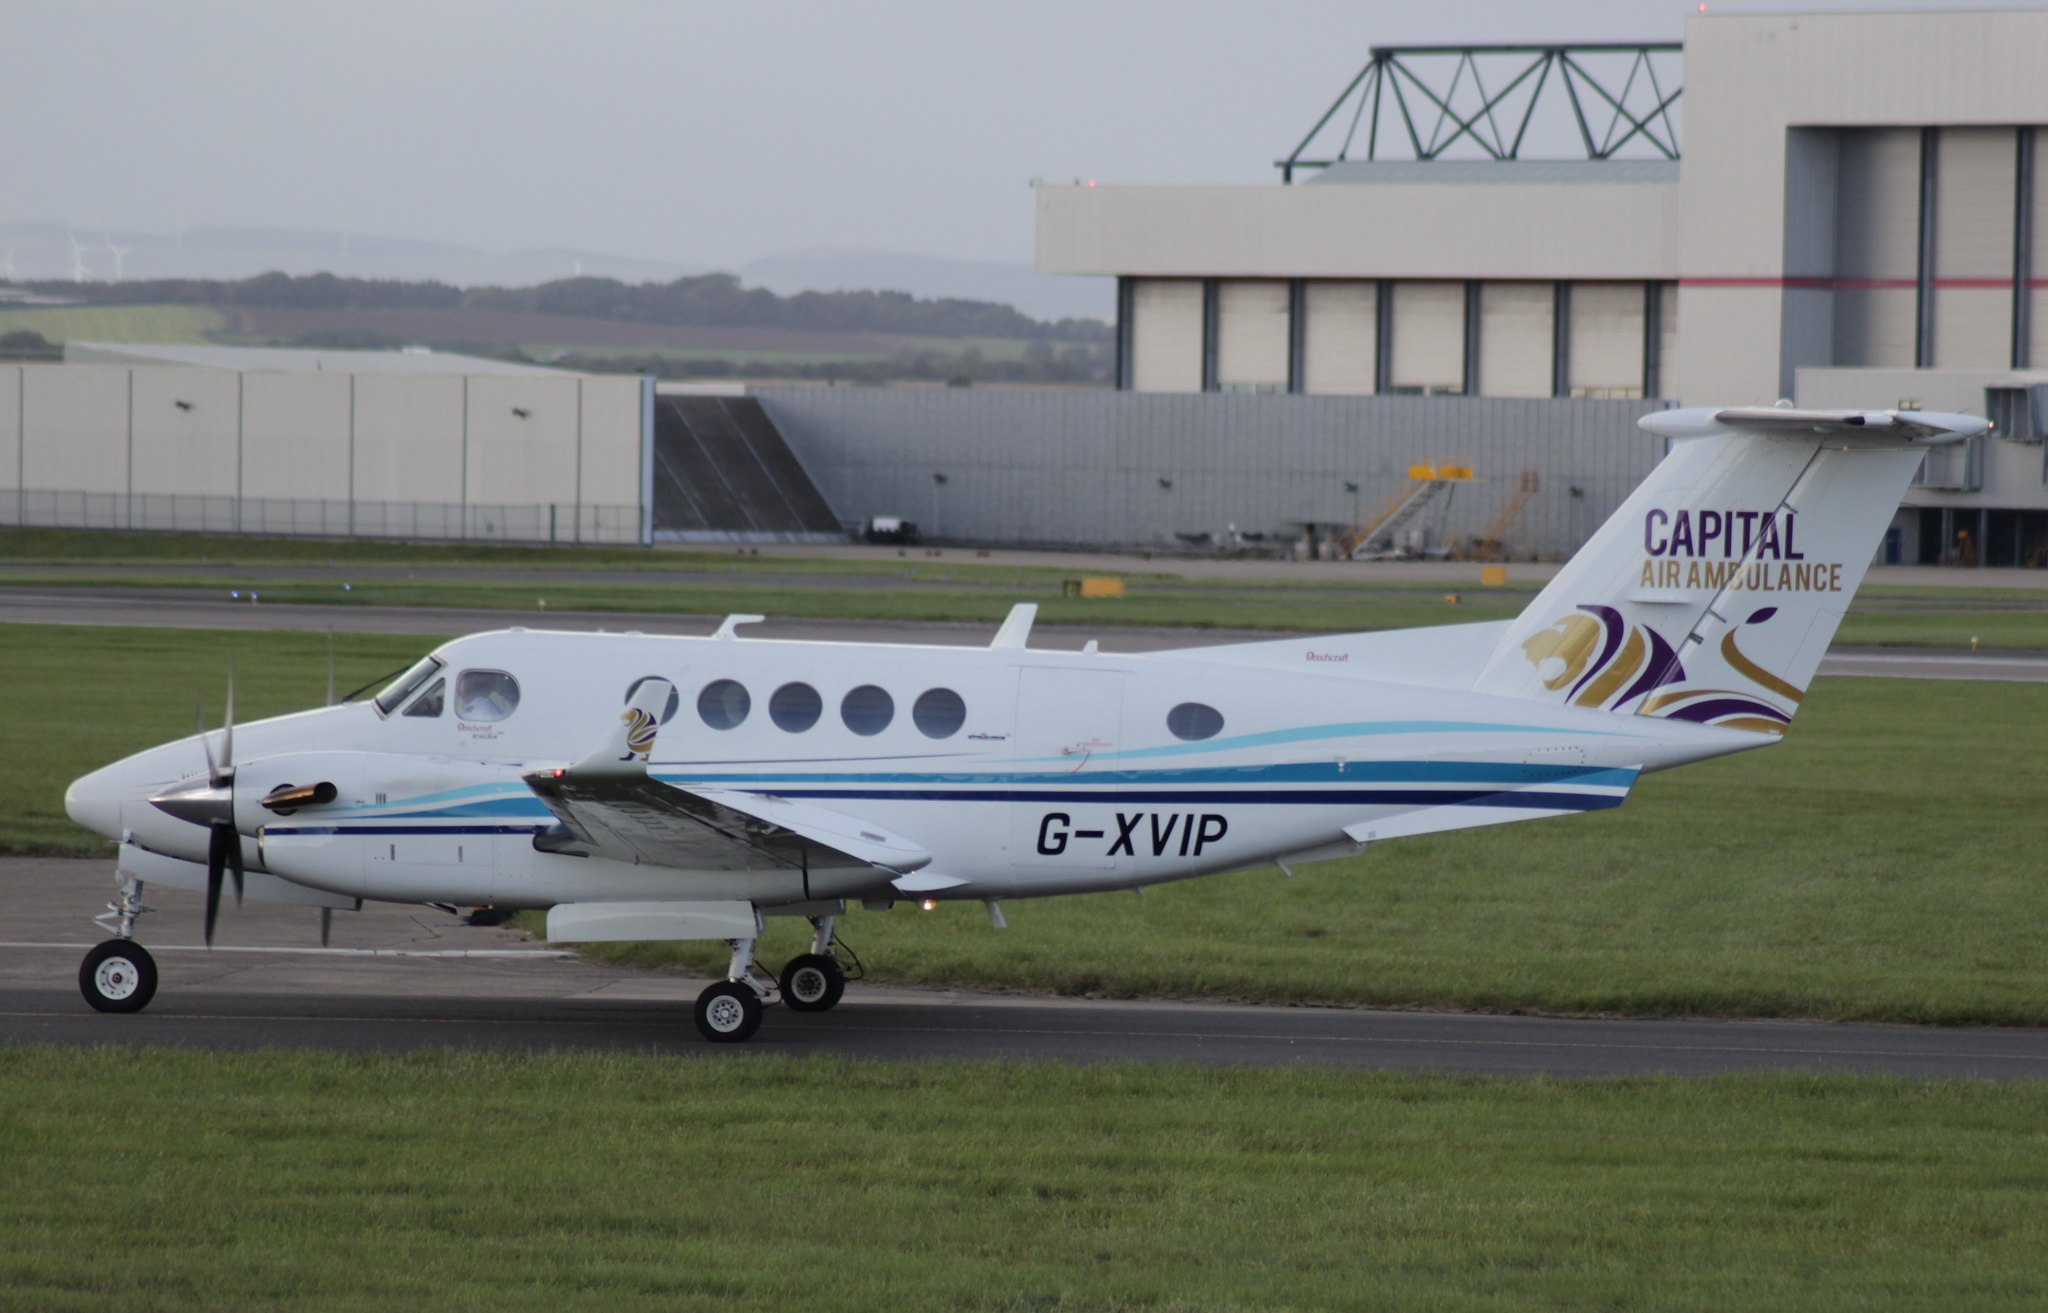 Beech 200 Super King Air G-XVIP 16OCT16